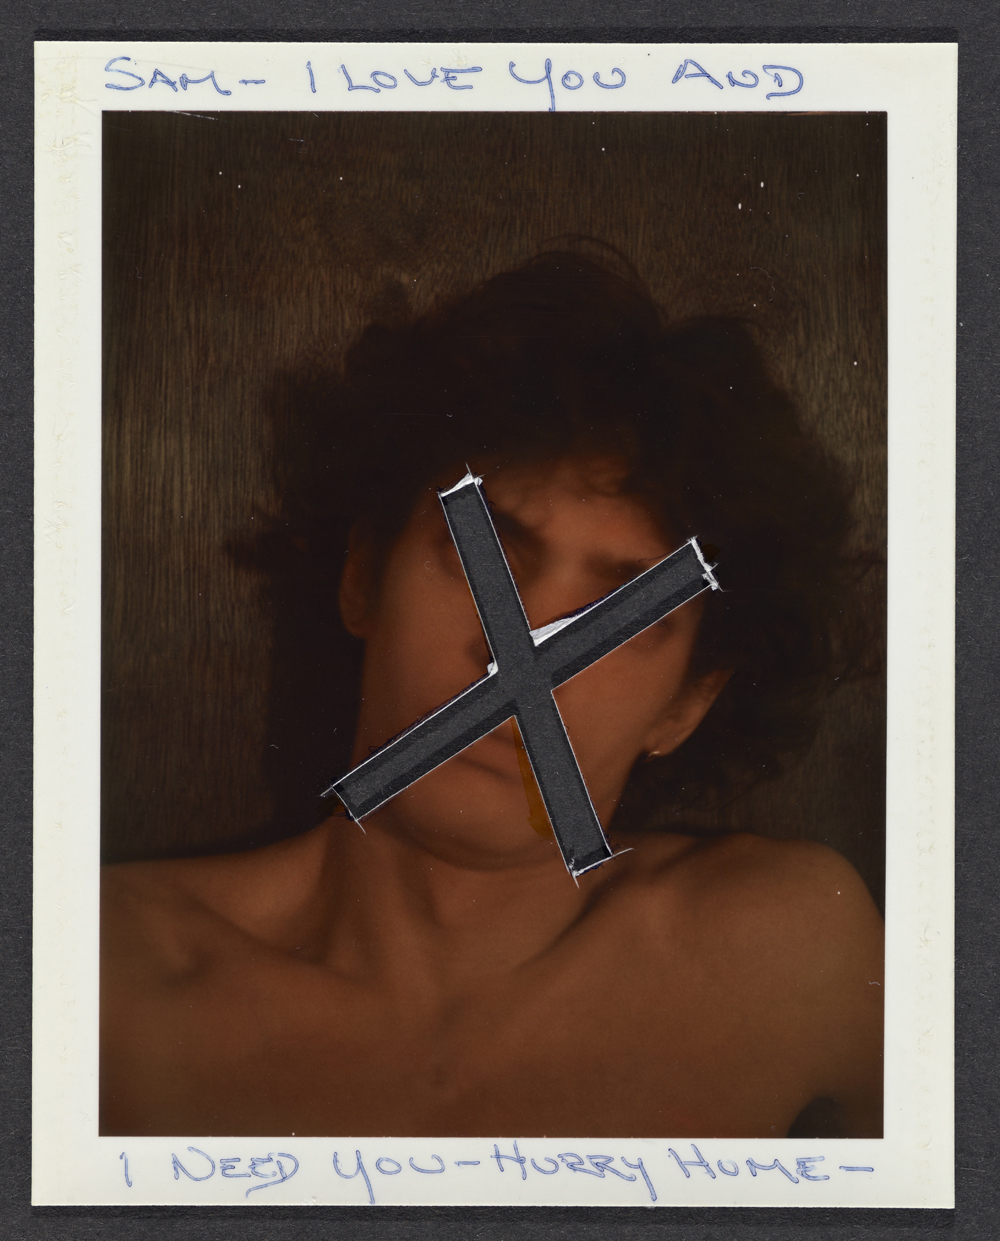 "13.03_Fig_27Robert Mapplethorpe (American, 1946–89). Untitled (""Sam—I love you and I need you—hurry home""), 1974, altered color Polaroid print. Gift of The Robert Mapplethorpe Foundation to the J. Paul Getty Trust and the Los Angeles County Museum of Art."